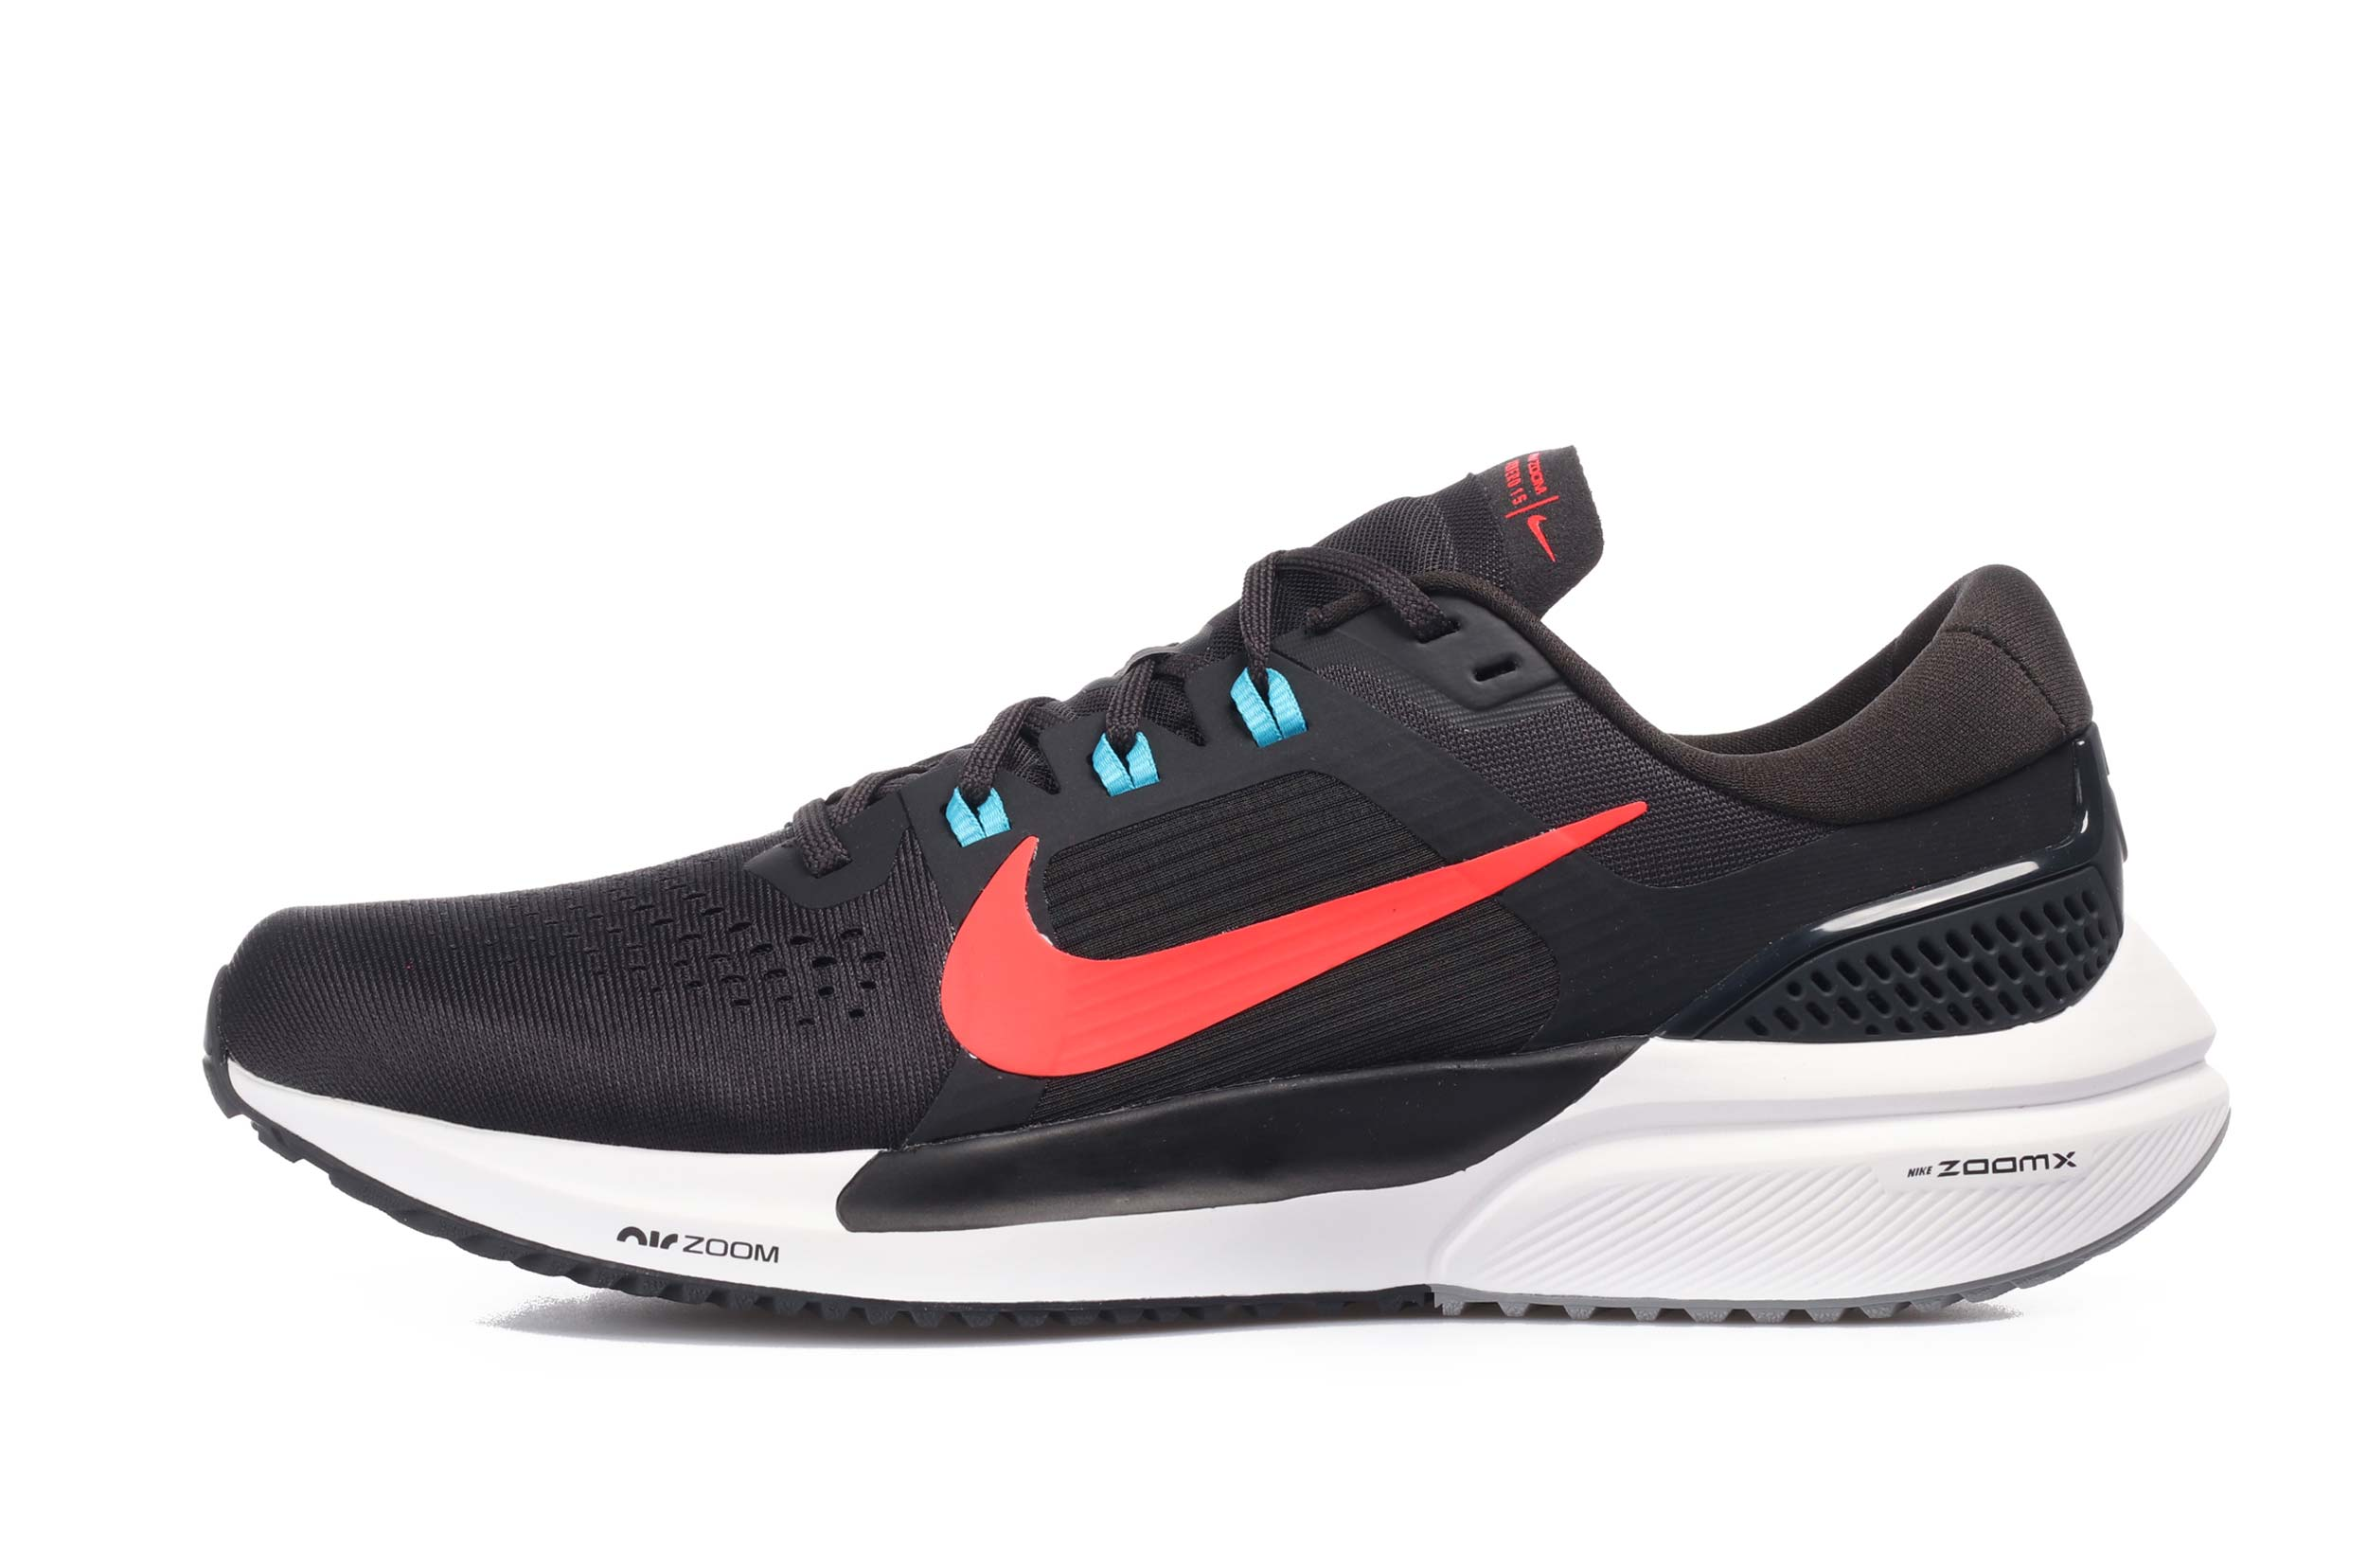 NIKE AIR ZOOM VOMERO 15 CU1855-004 Ανθρακί